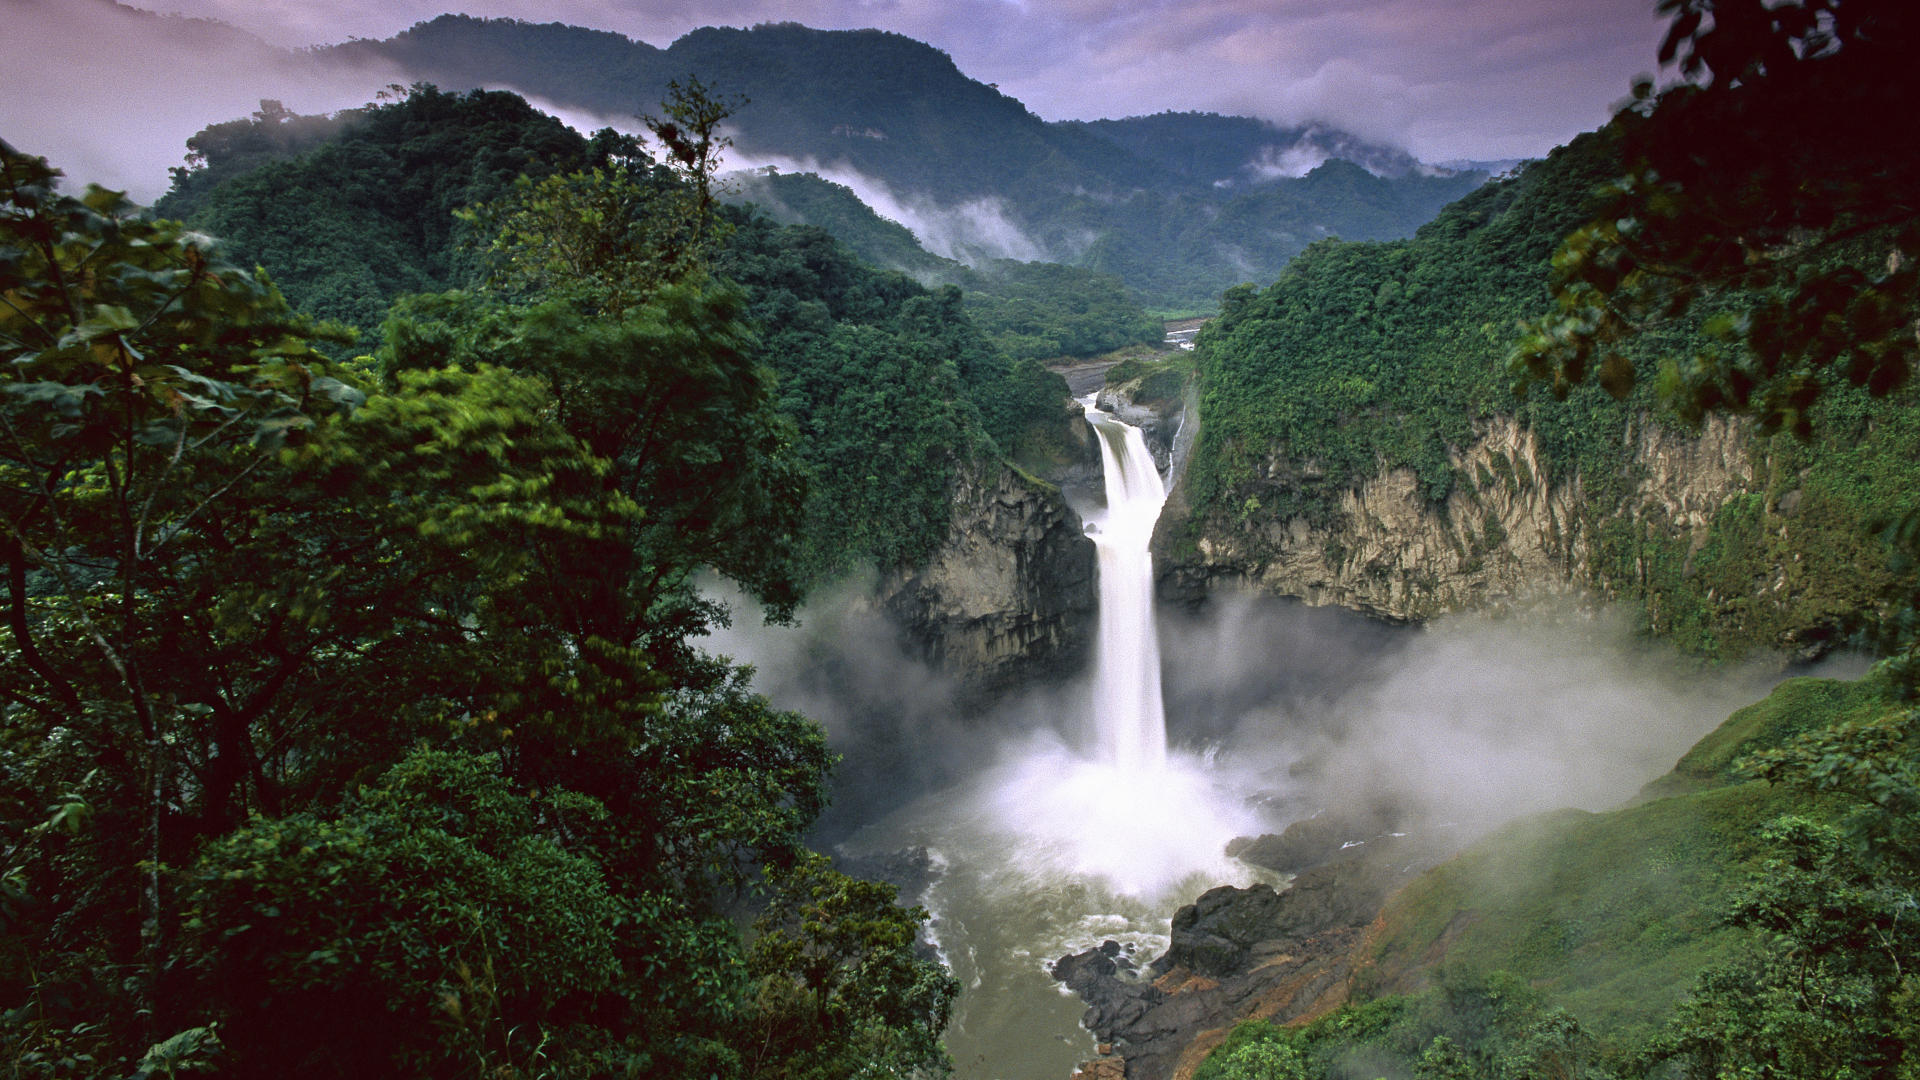 Amazon-Waterfall-1920x1080-Need-iPhone-S-Plus-Background-for-IPhoneSPlus-Follo-wallpaper-wp3402322